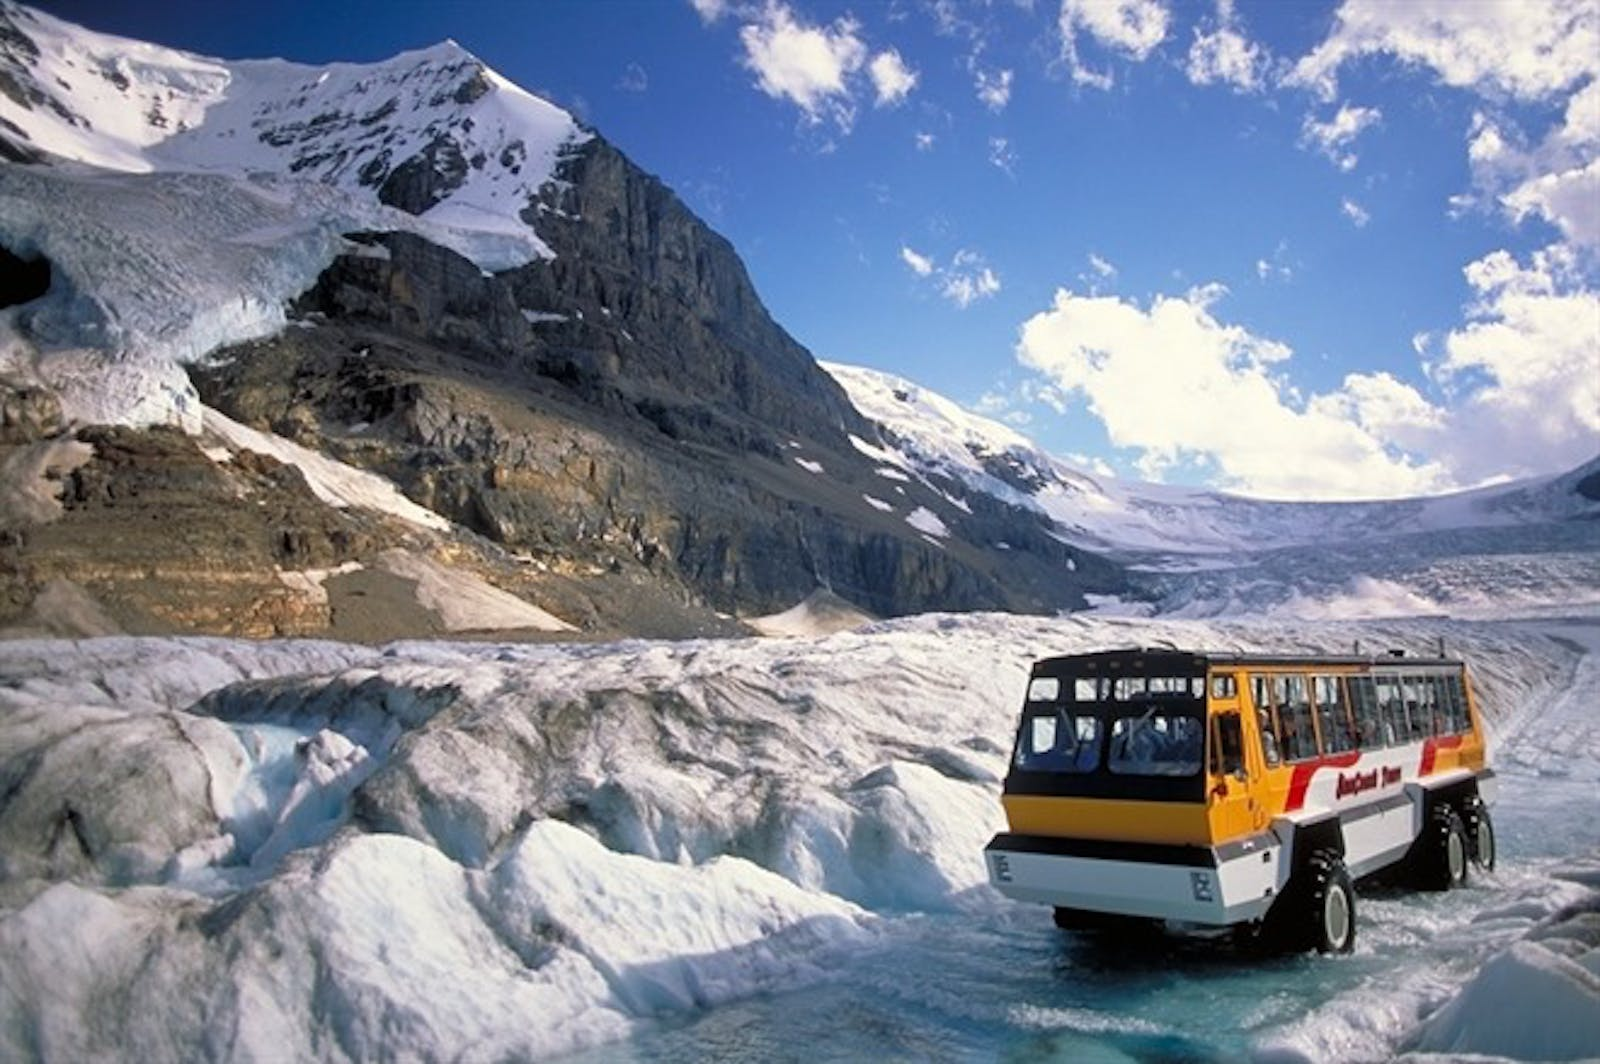 Ice Explorer Ride - Photo Courtesy Tourism Jasper